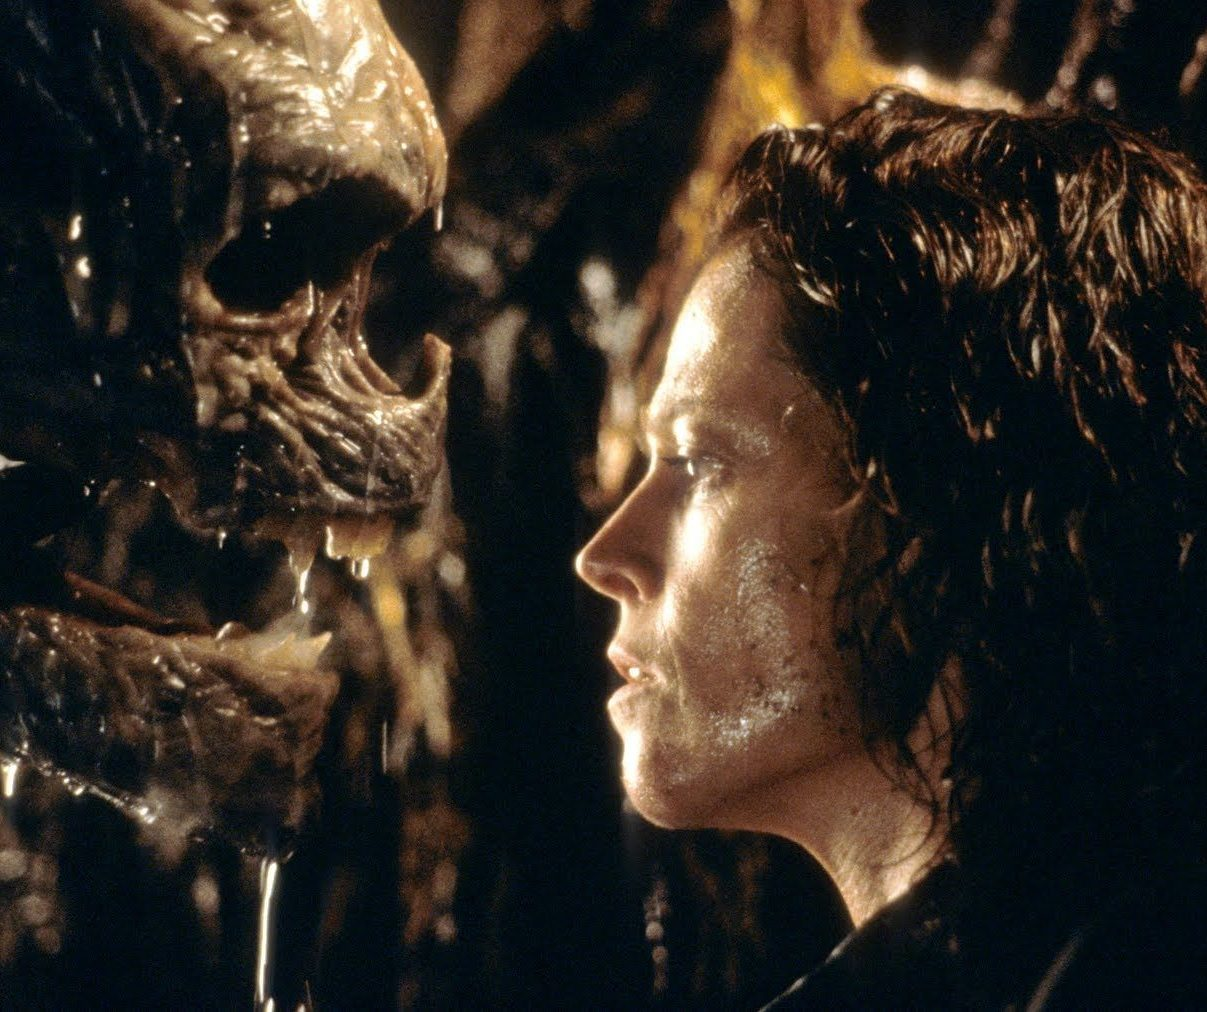 Alien Resurrection e1609843054169 20 Things You Probably Didn't Know About Sigourney Weaver